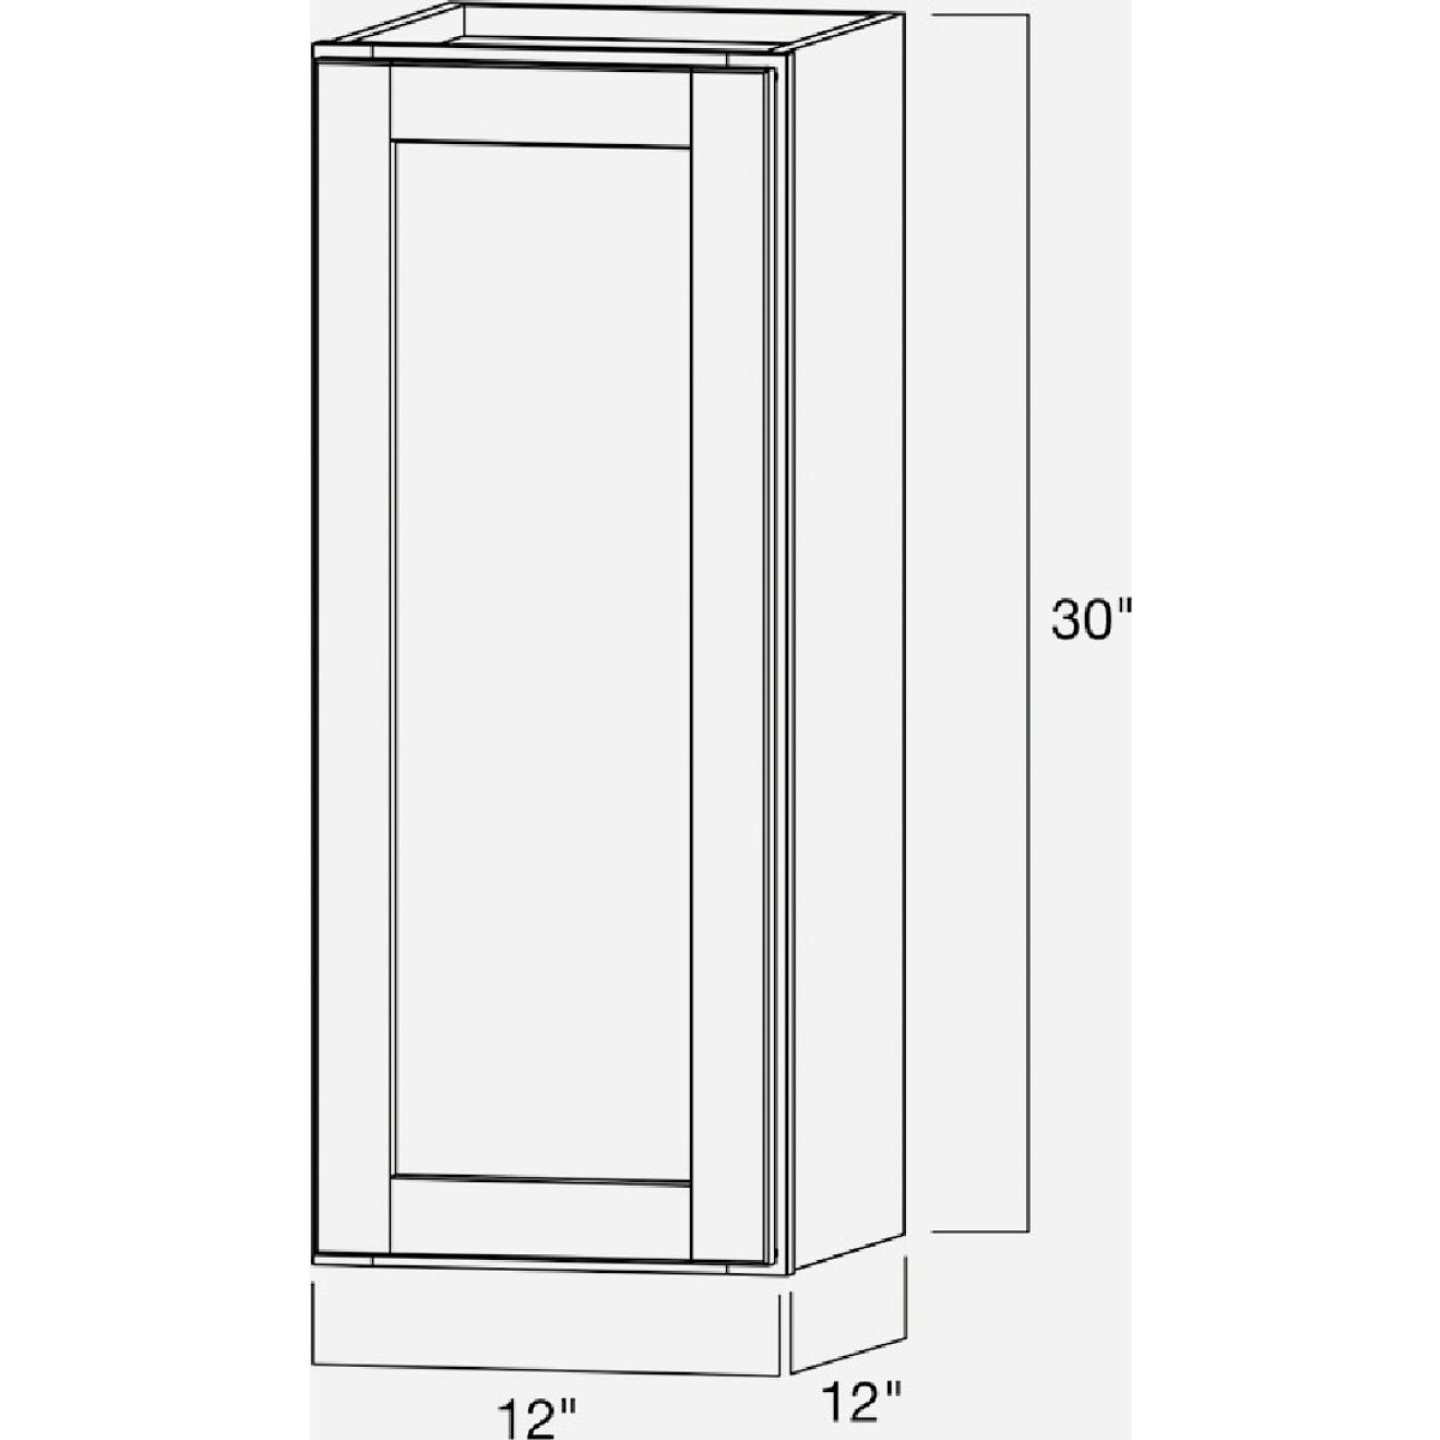 Continental Cabinets Andover Shaker 12 In. W x 30 In. H x 12 In. D White Thermofoil Wall Kitchen Cabinet Image 5